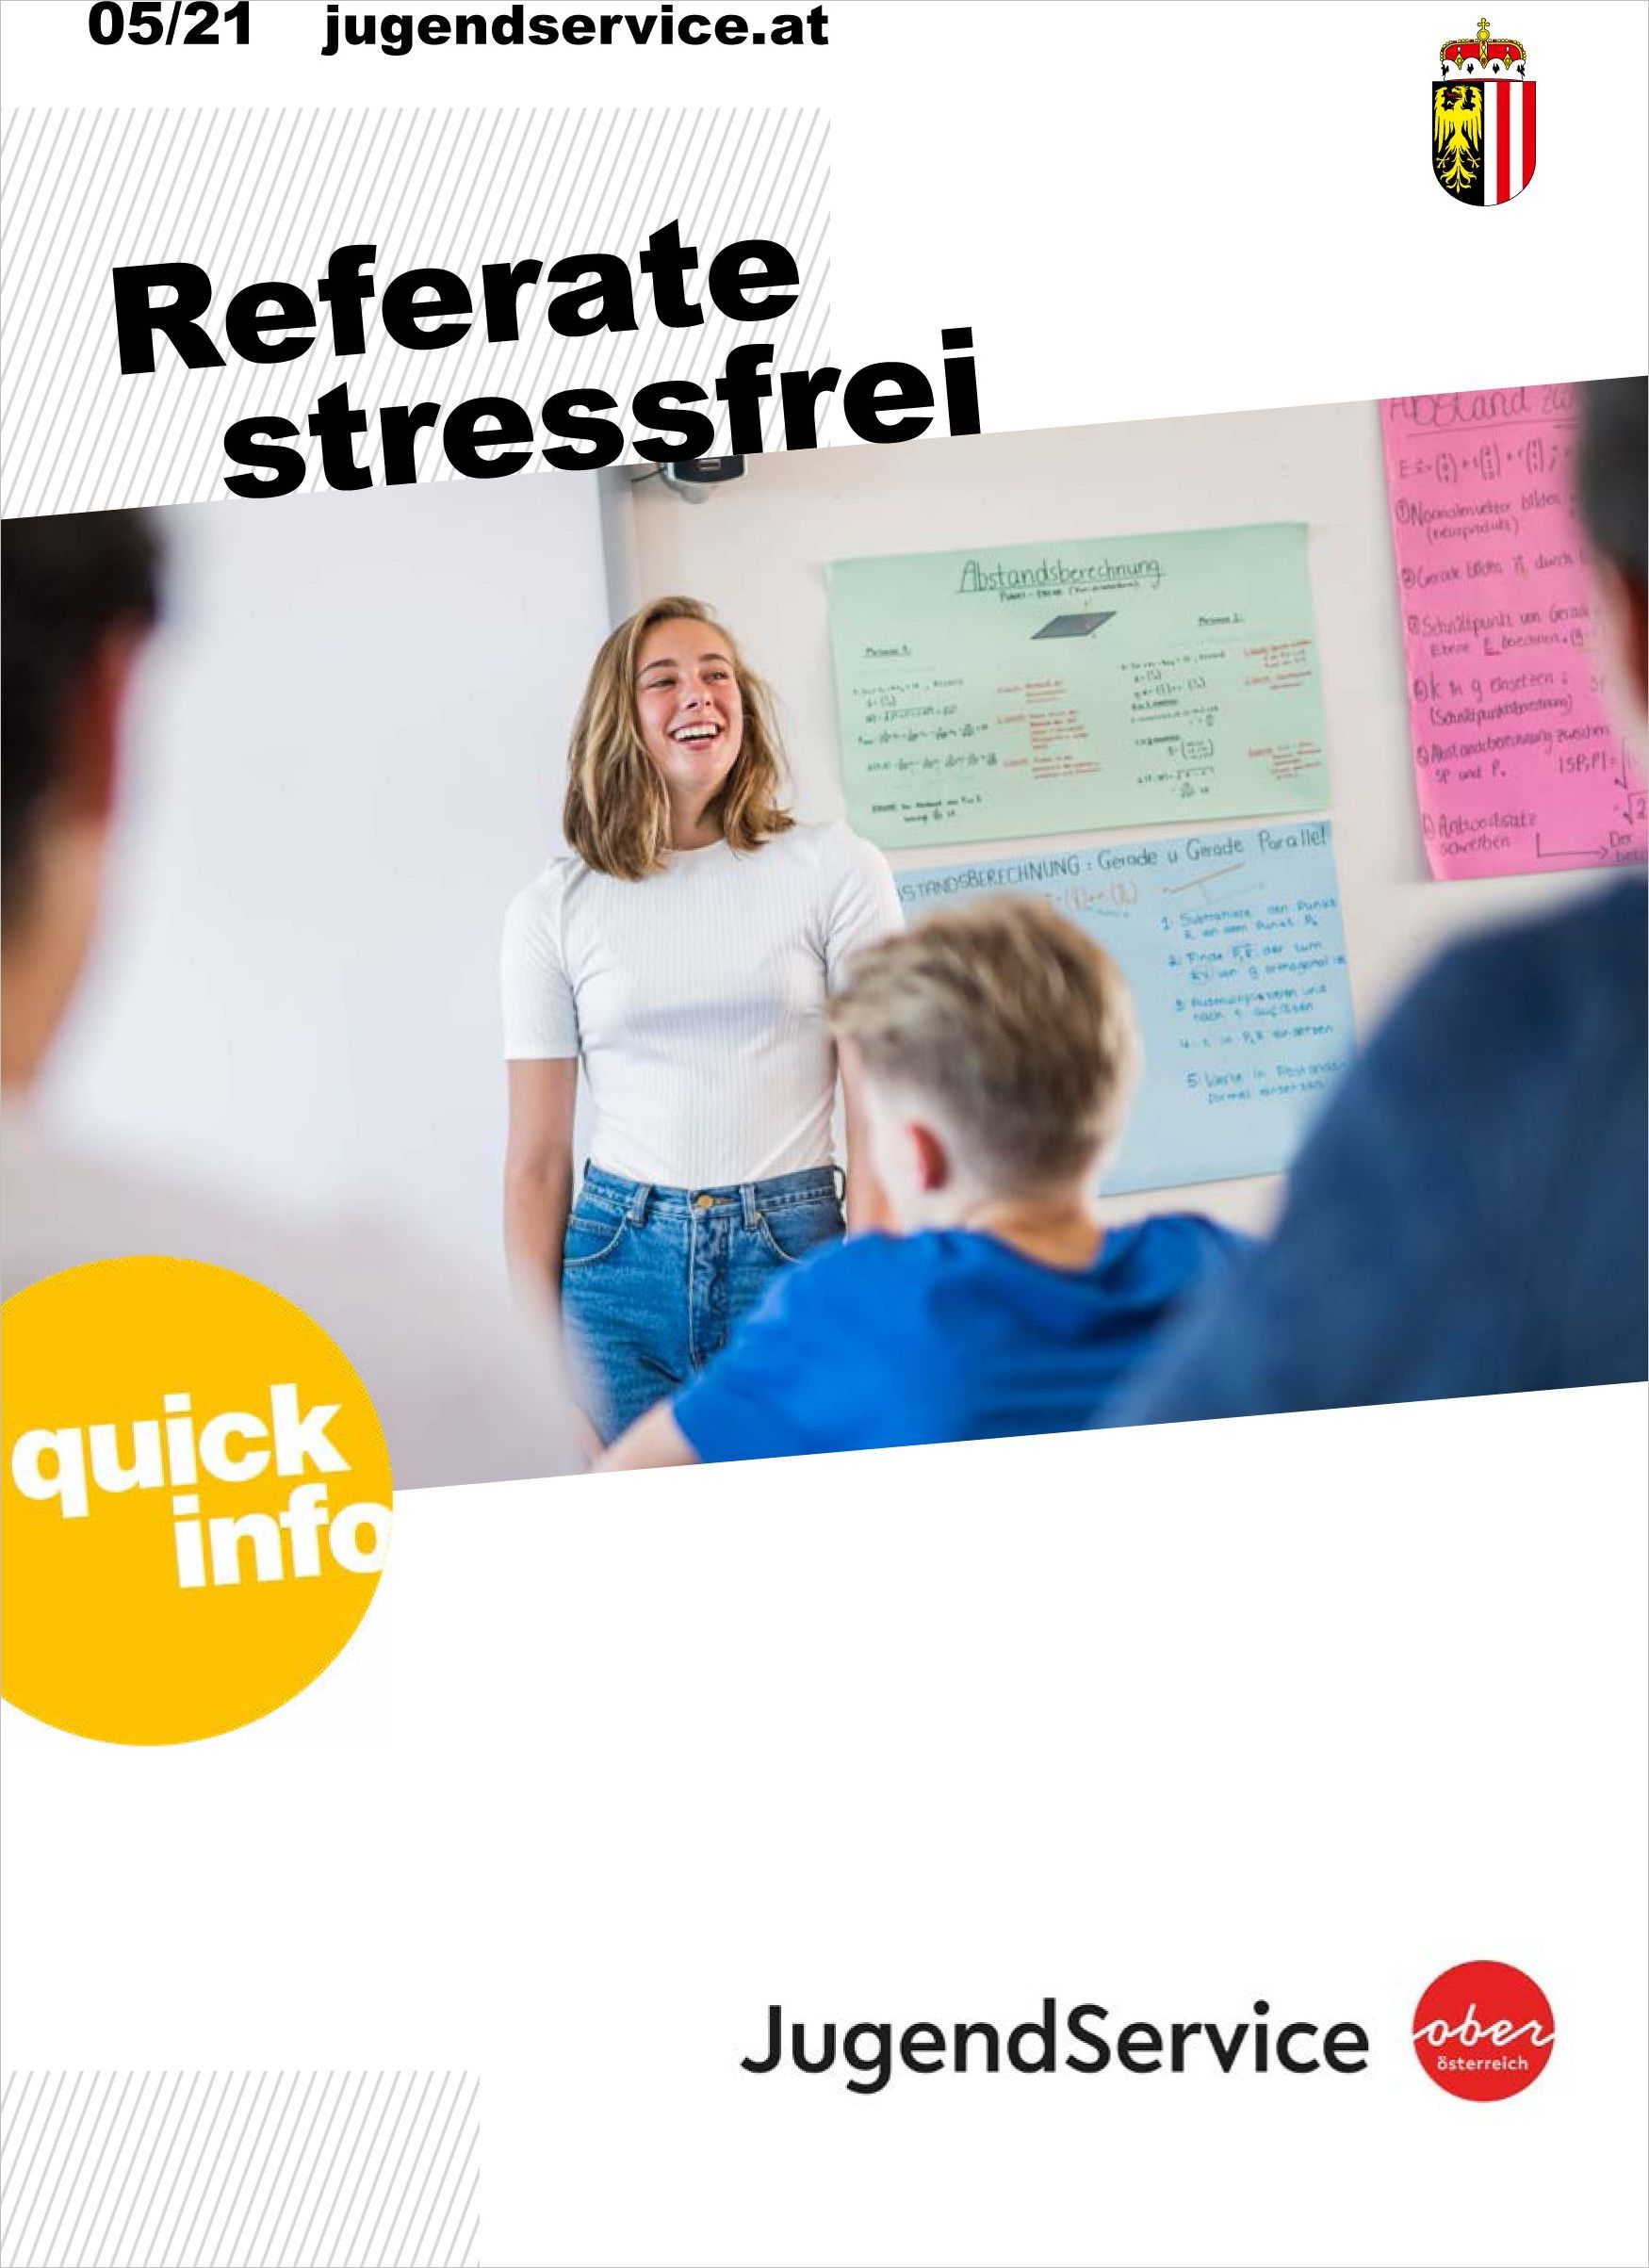 Quickinfo - Referate Stressfrei